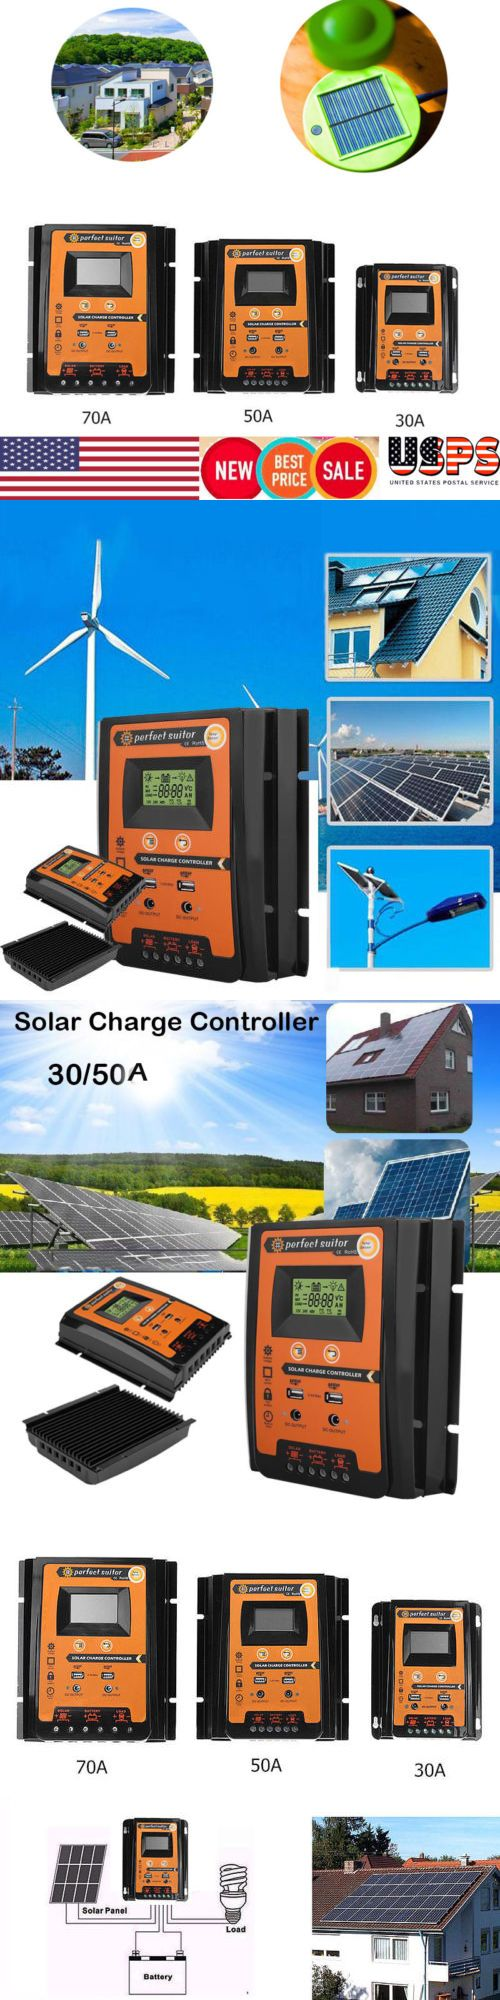 Chargers And Inverters 41980 Lcd 30 50 70a Mppt Solar Charge Controller Panel Regulator Auto 12v 24v Dual Usb Buy It N Dual Usb Chargers Paneling